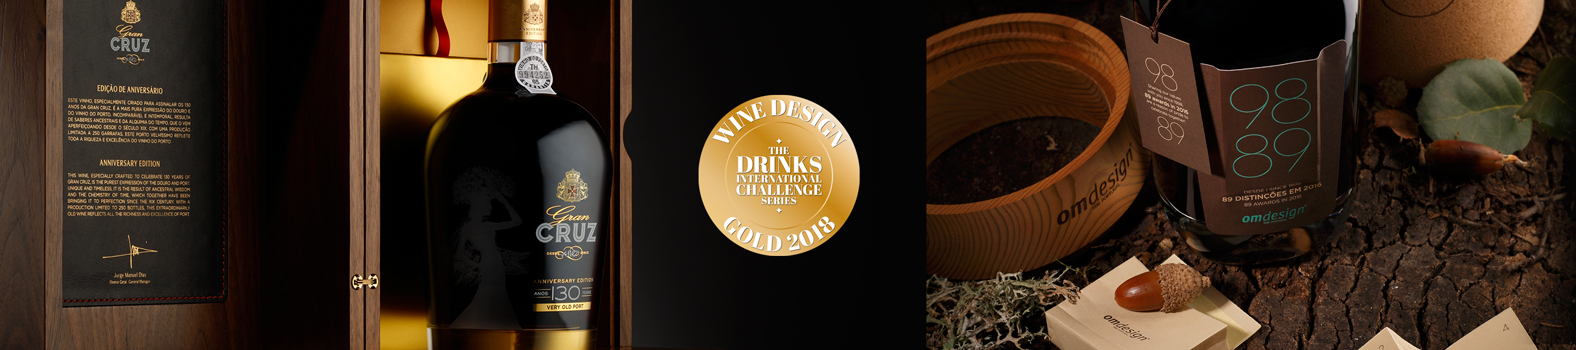 Omdesign is distinguished at the Wine Design Challenge